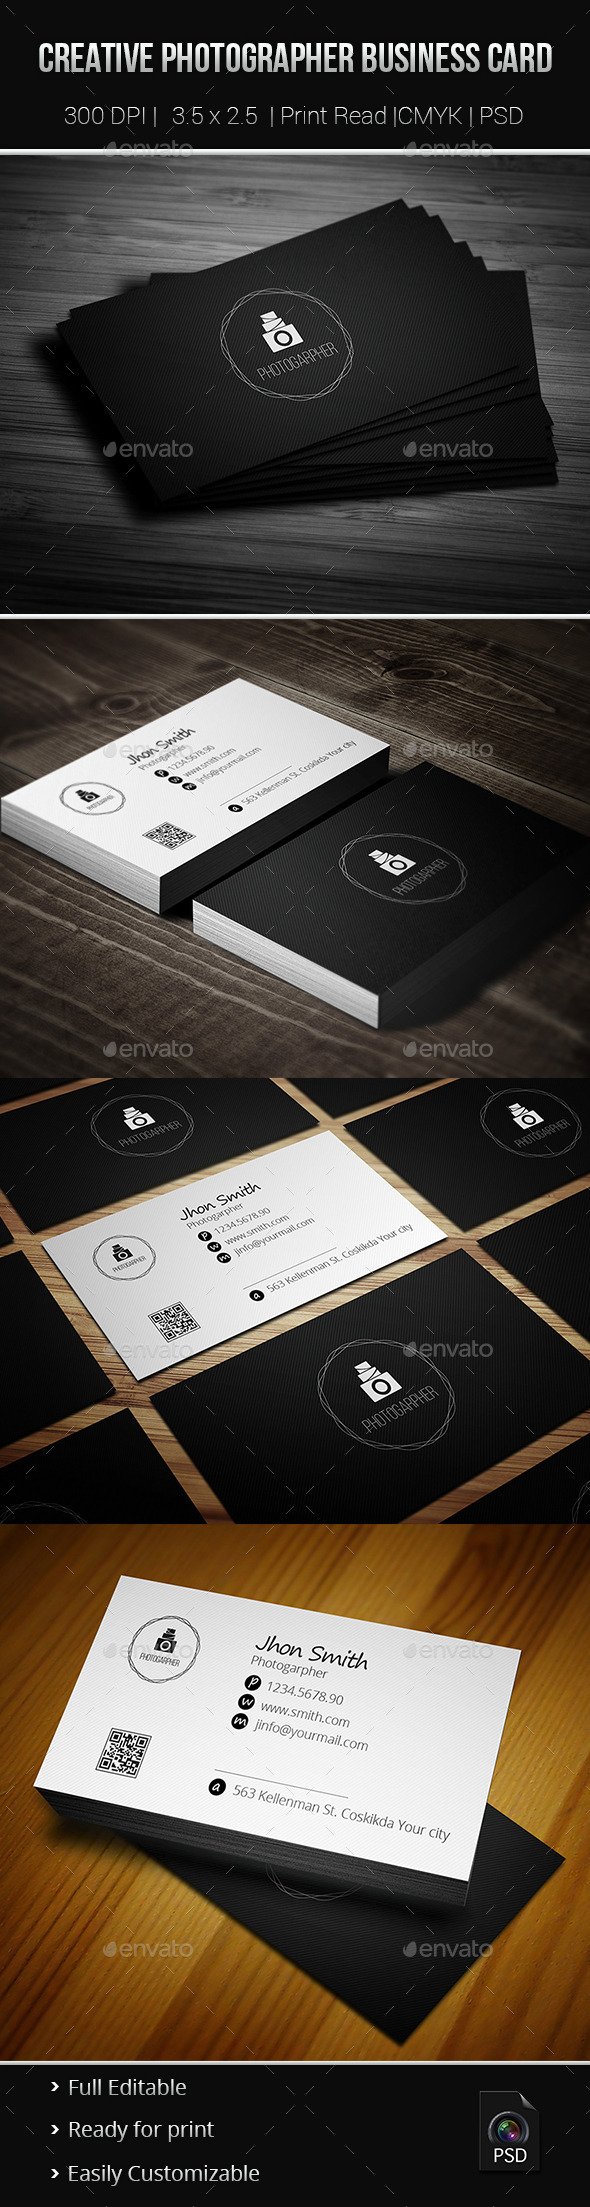 Creative Photgrapher Business Card 02 - Creative Business Cards